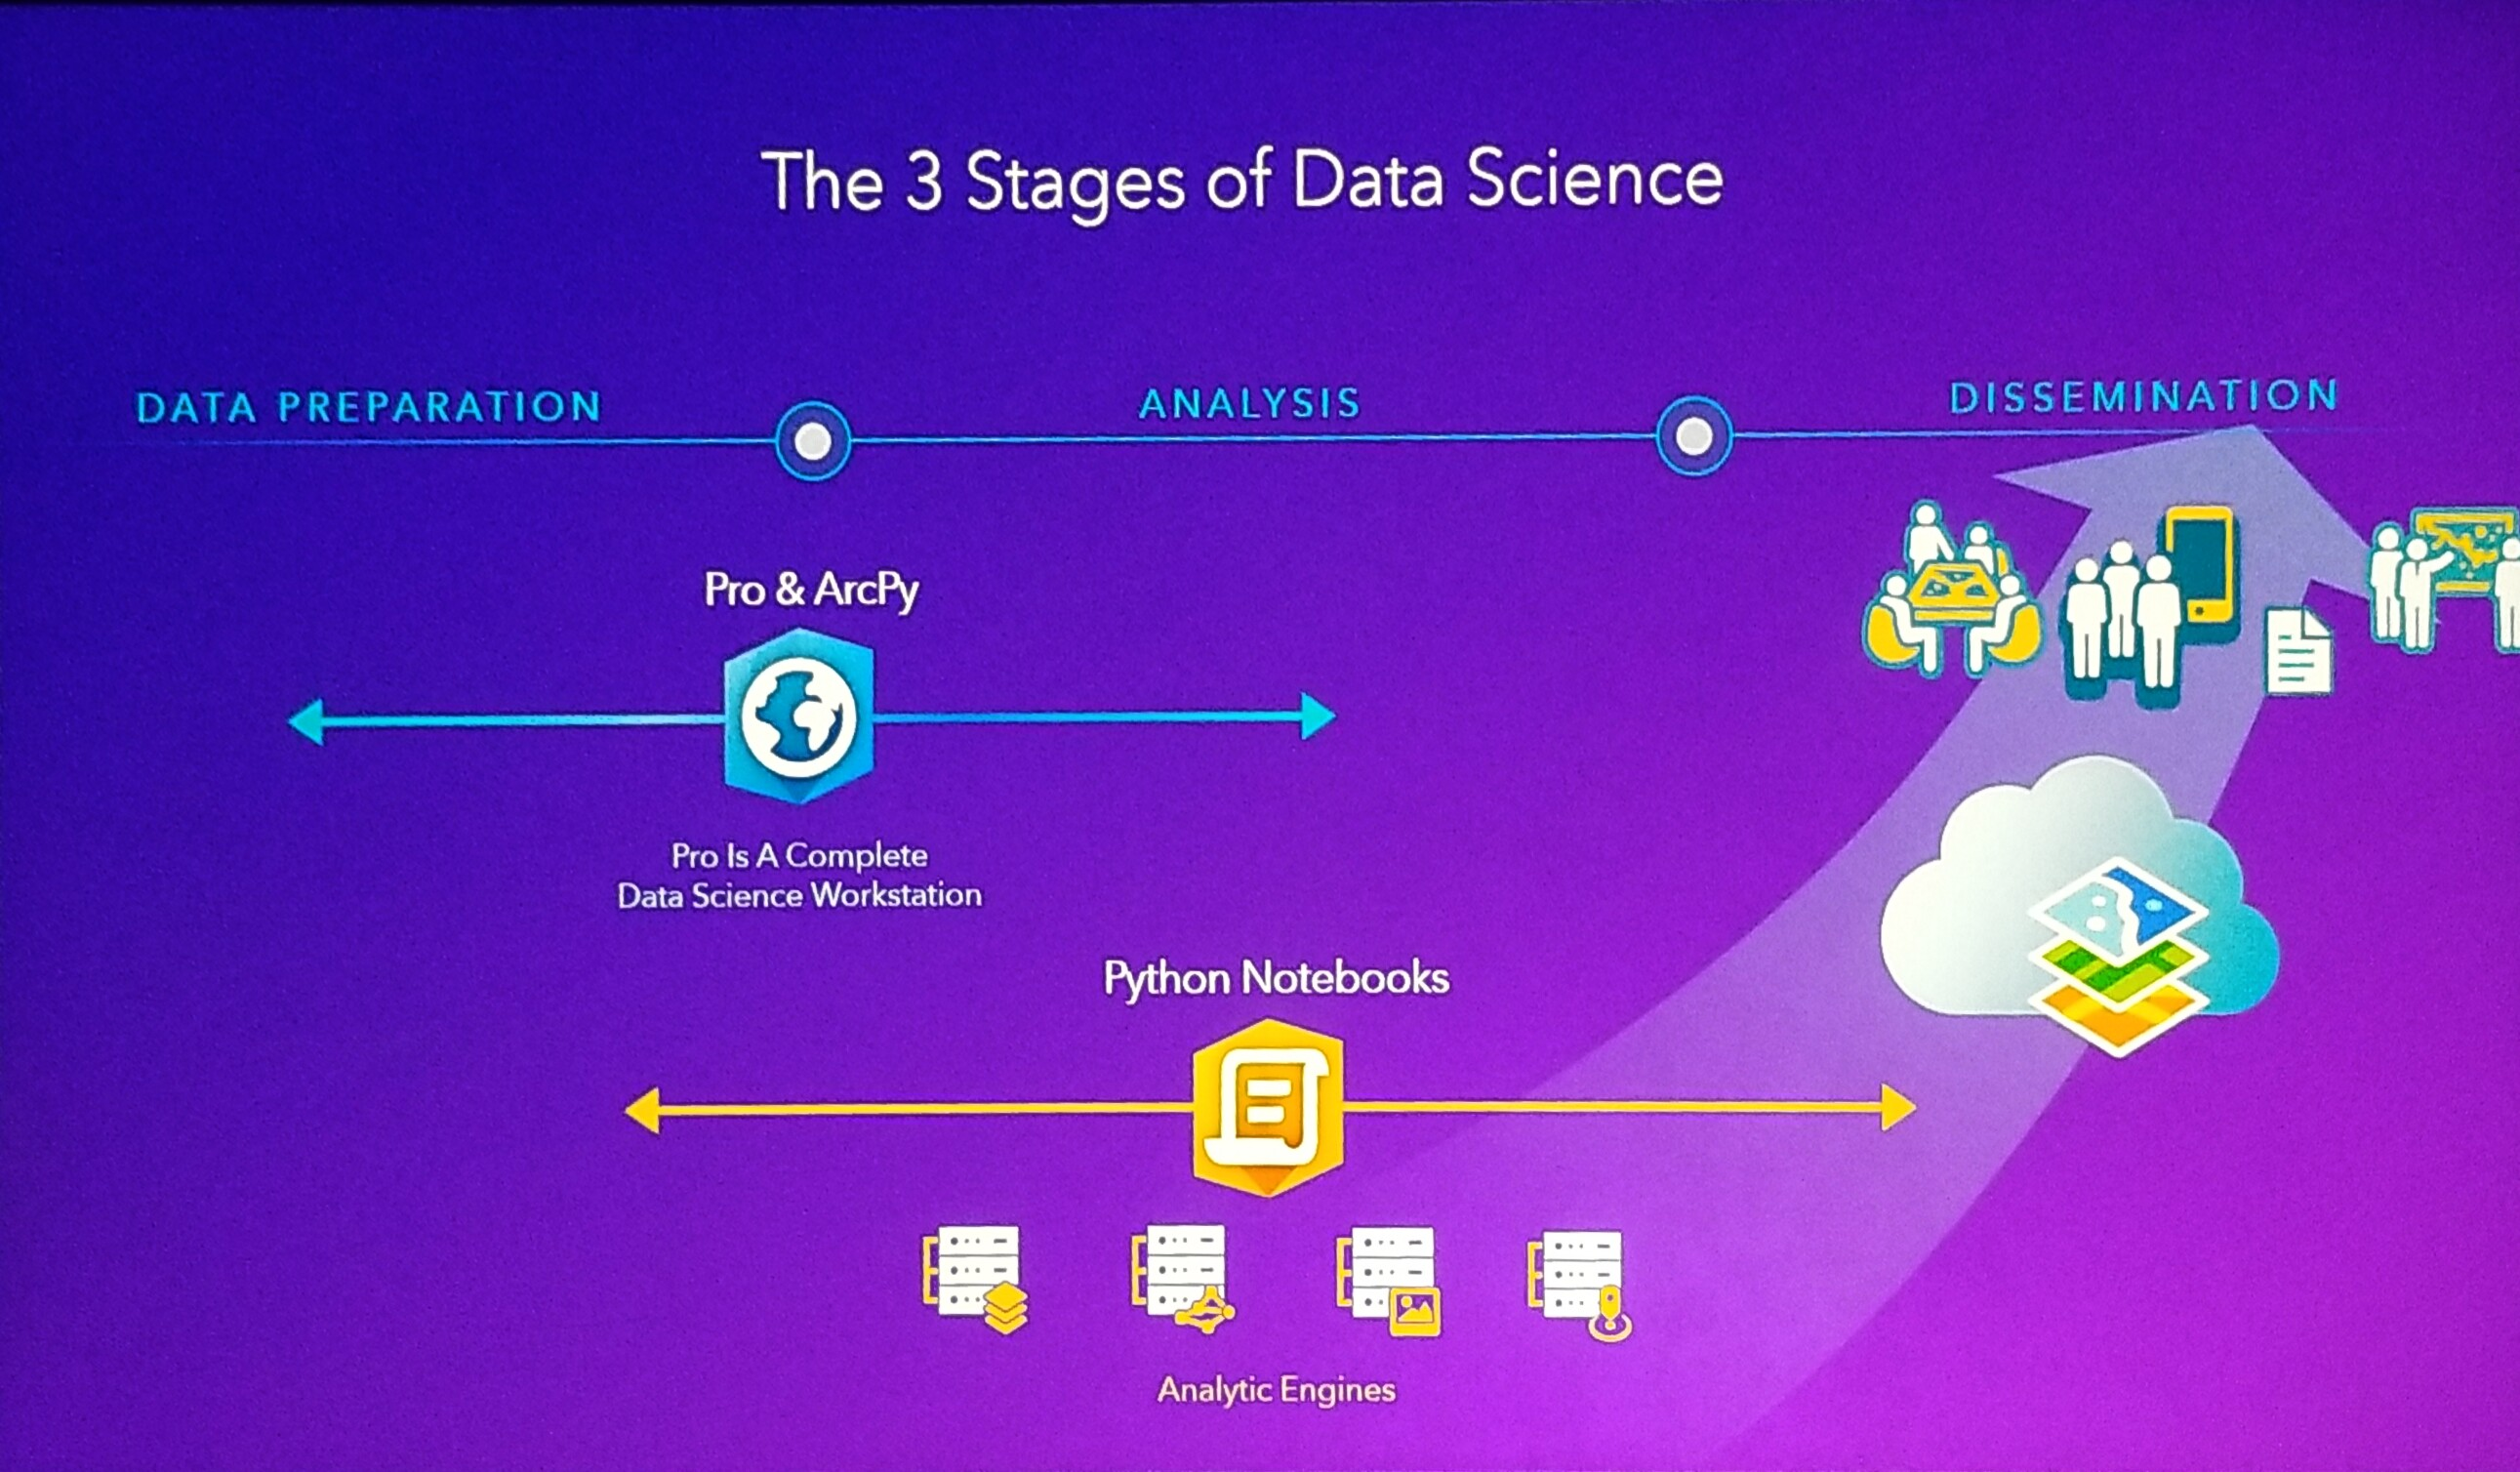 3 stages of data science